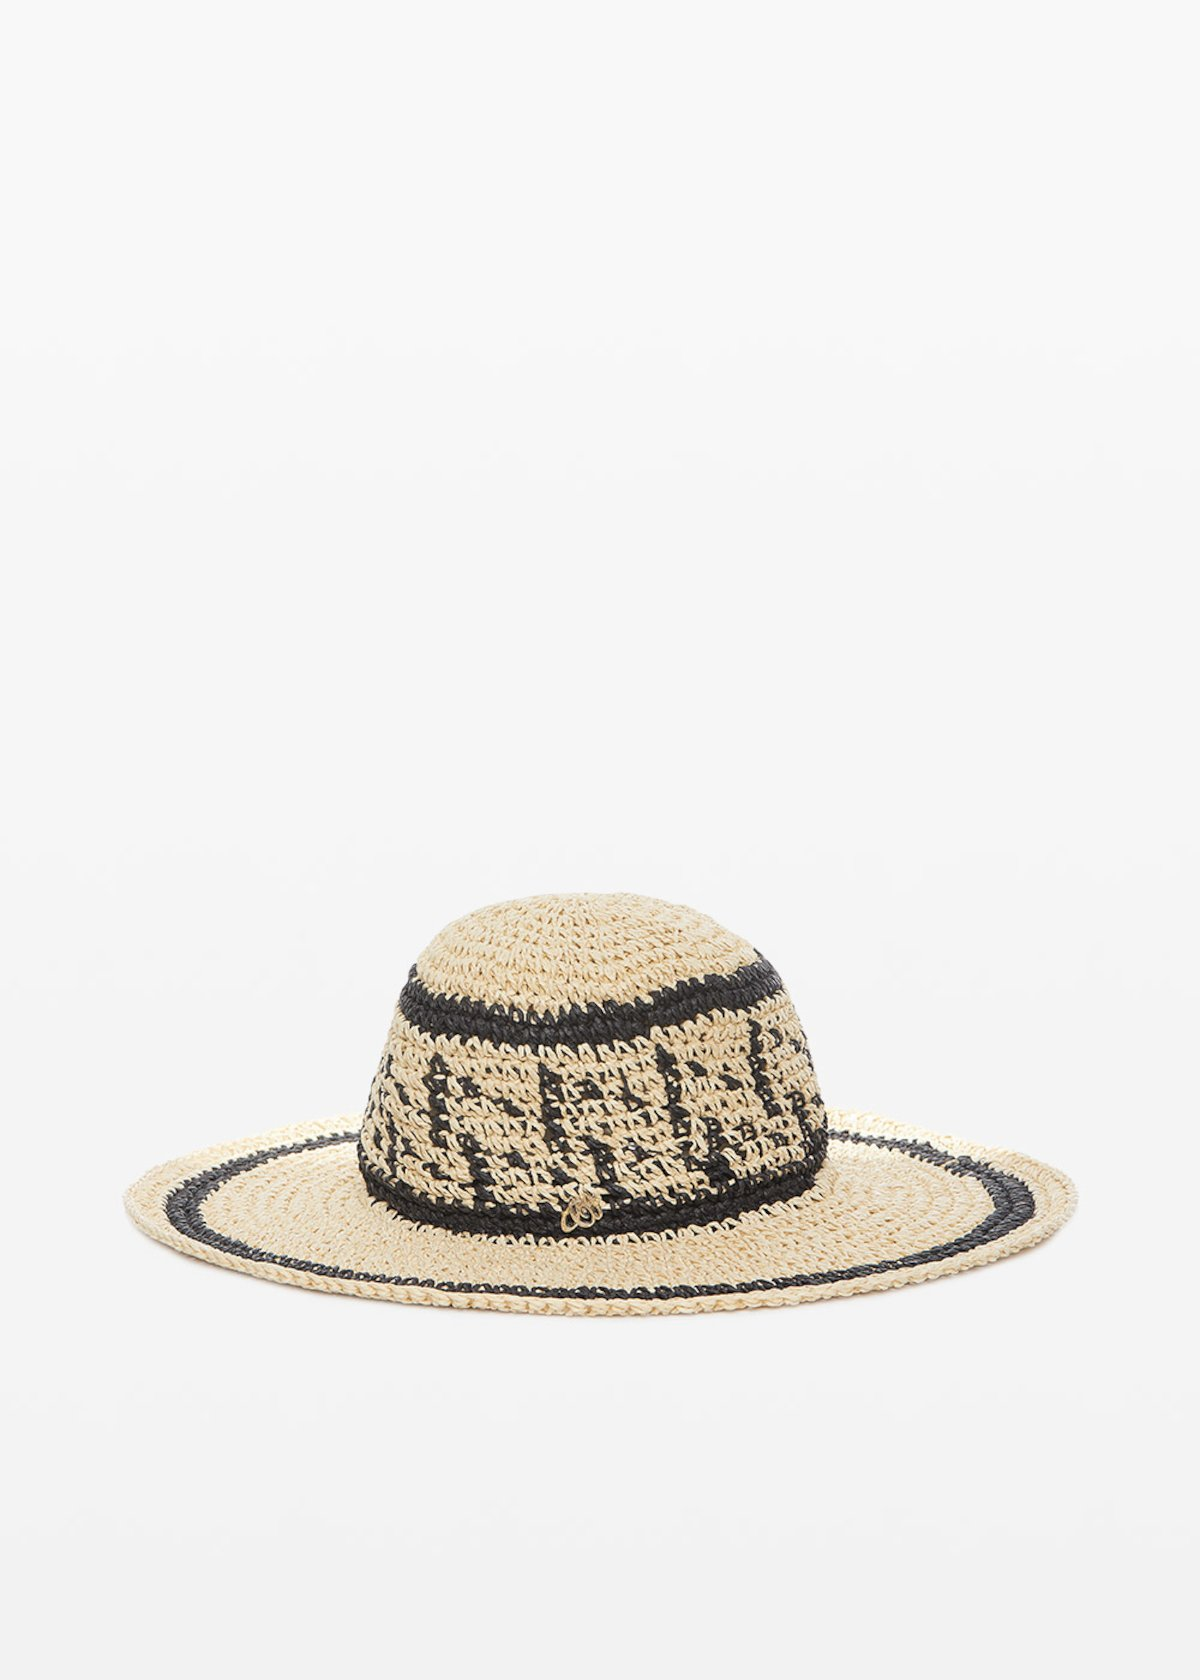 Crissy straw hat with contrasting decorations - Beige / Black Fantasia - Woman